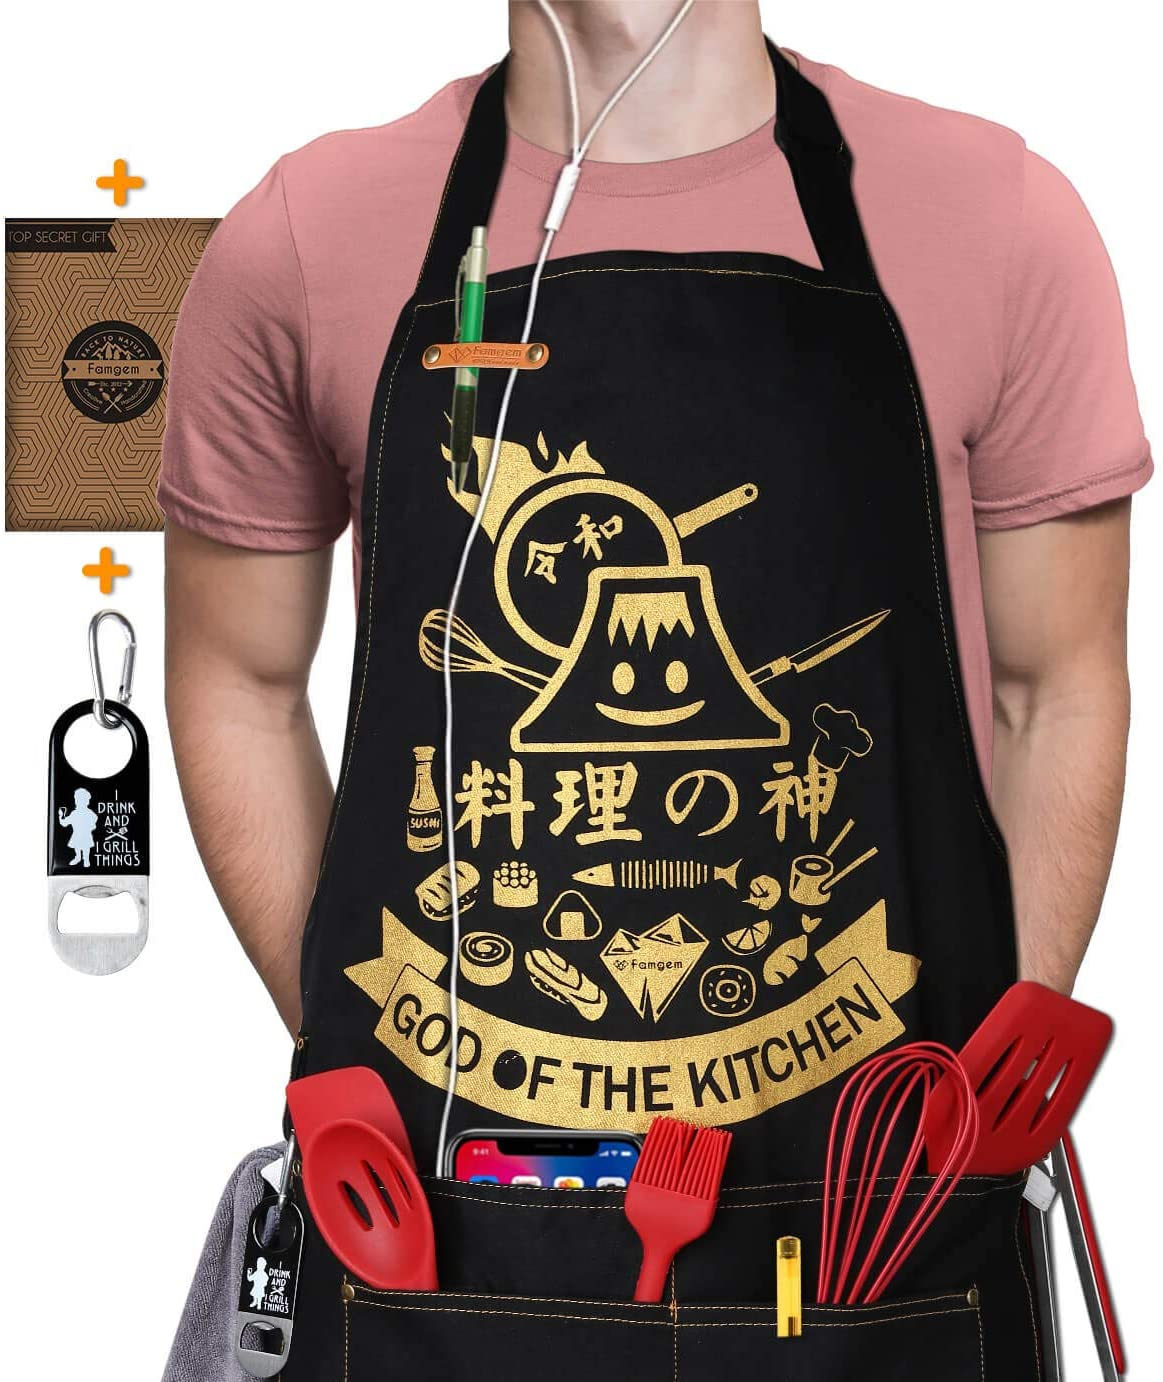 Famgem Kitchen Aprons Japanese for Womens - Professional Mens Grill Sushi Japan Chef Apron with 5 Pockets 1Pen Holder / 2 Towel Loop / 100% Cotton